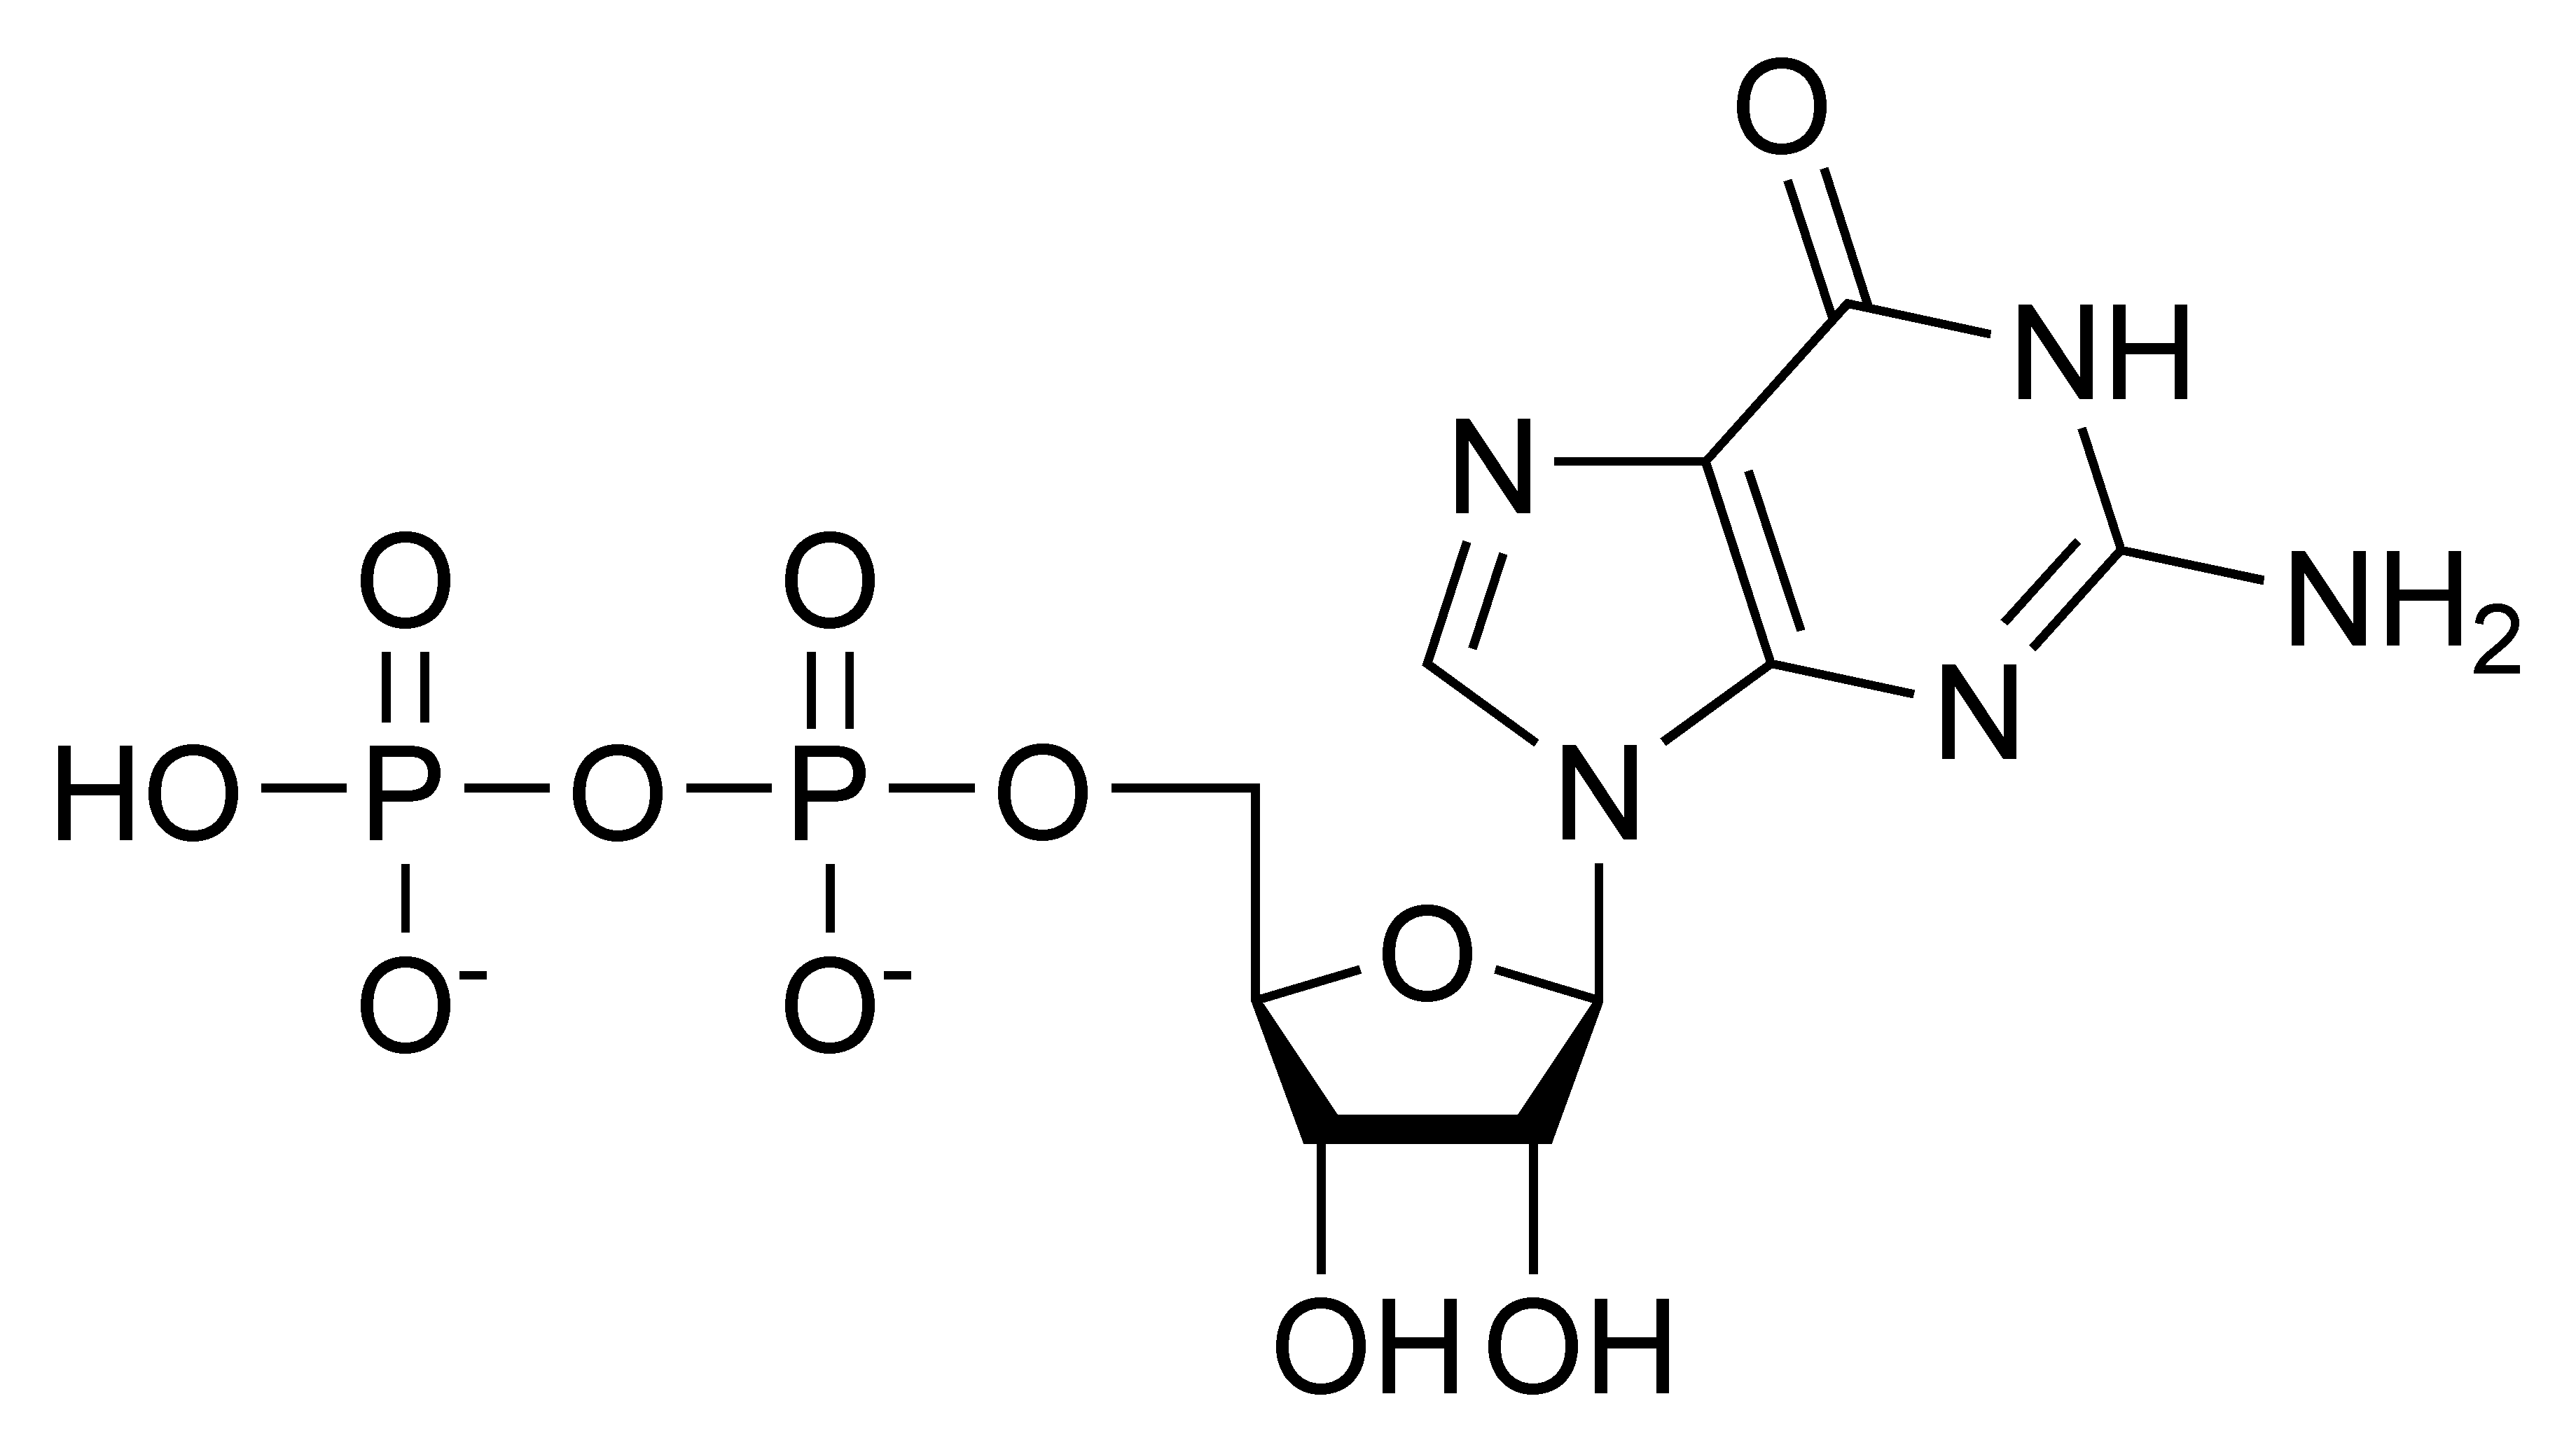 Chemical structure of guanosine diphosphate